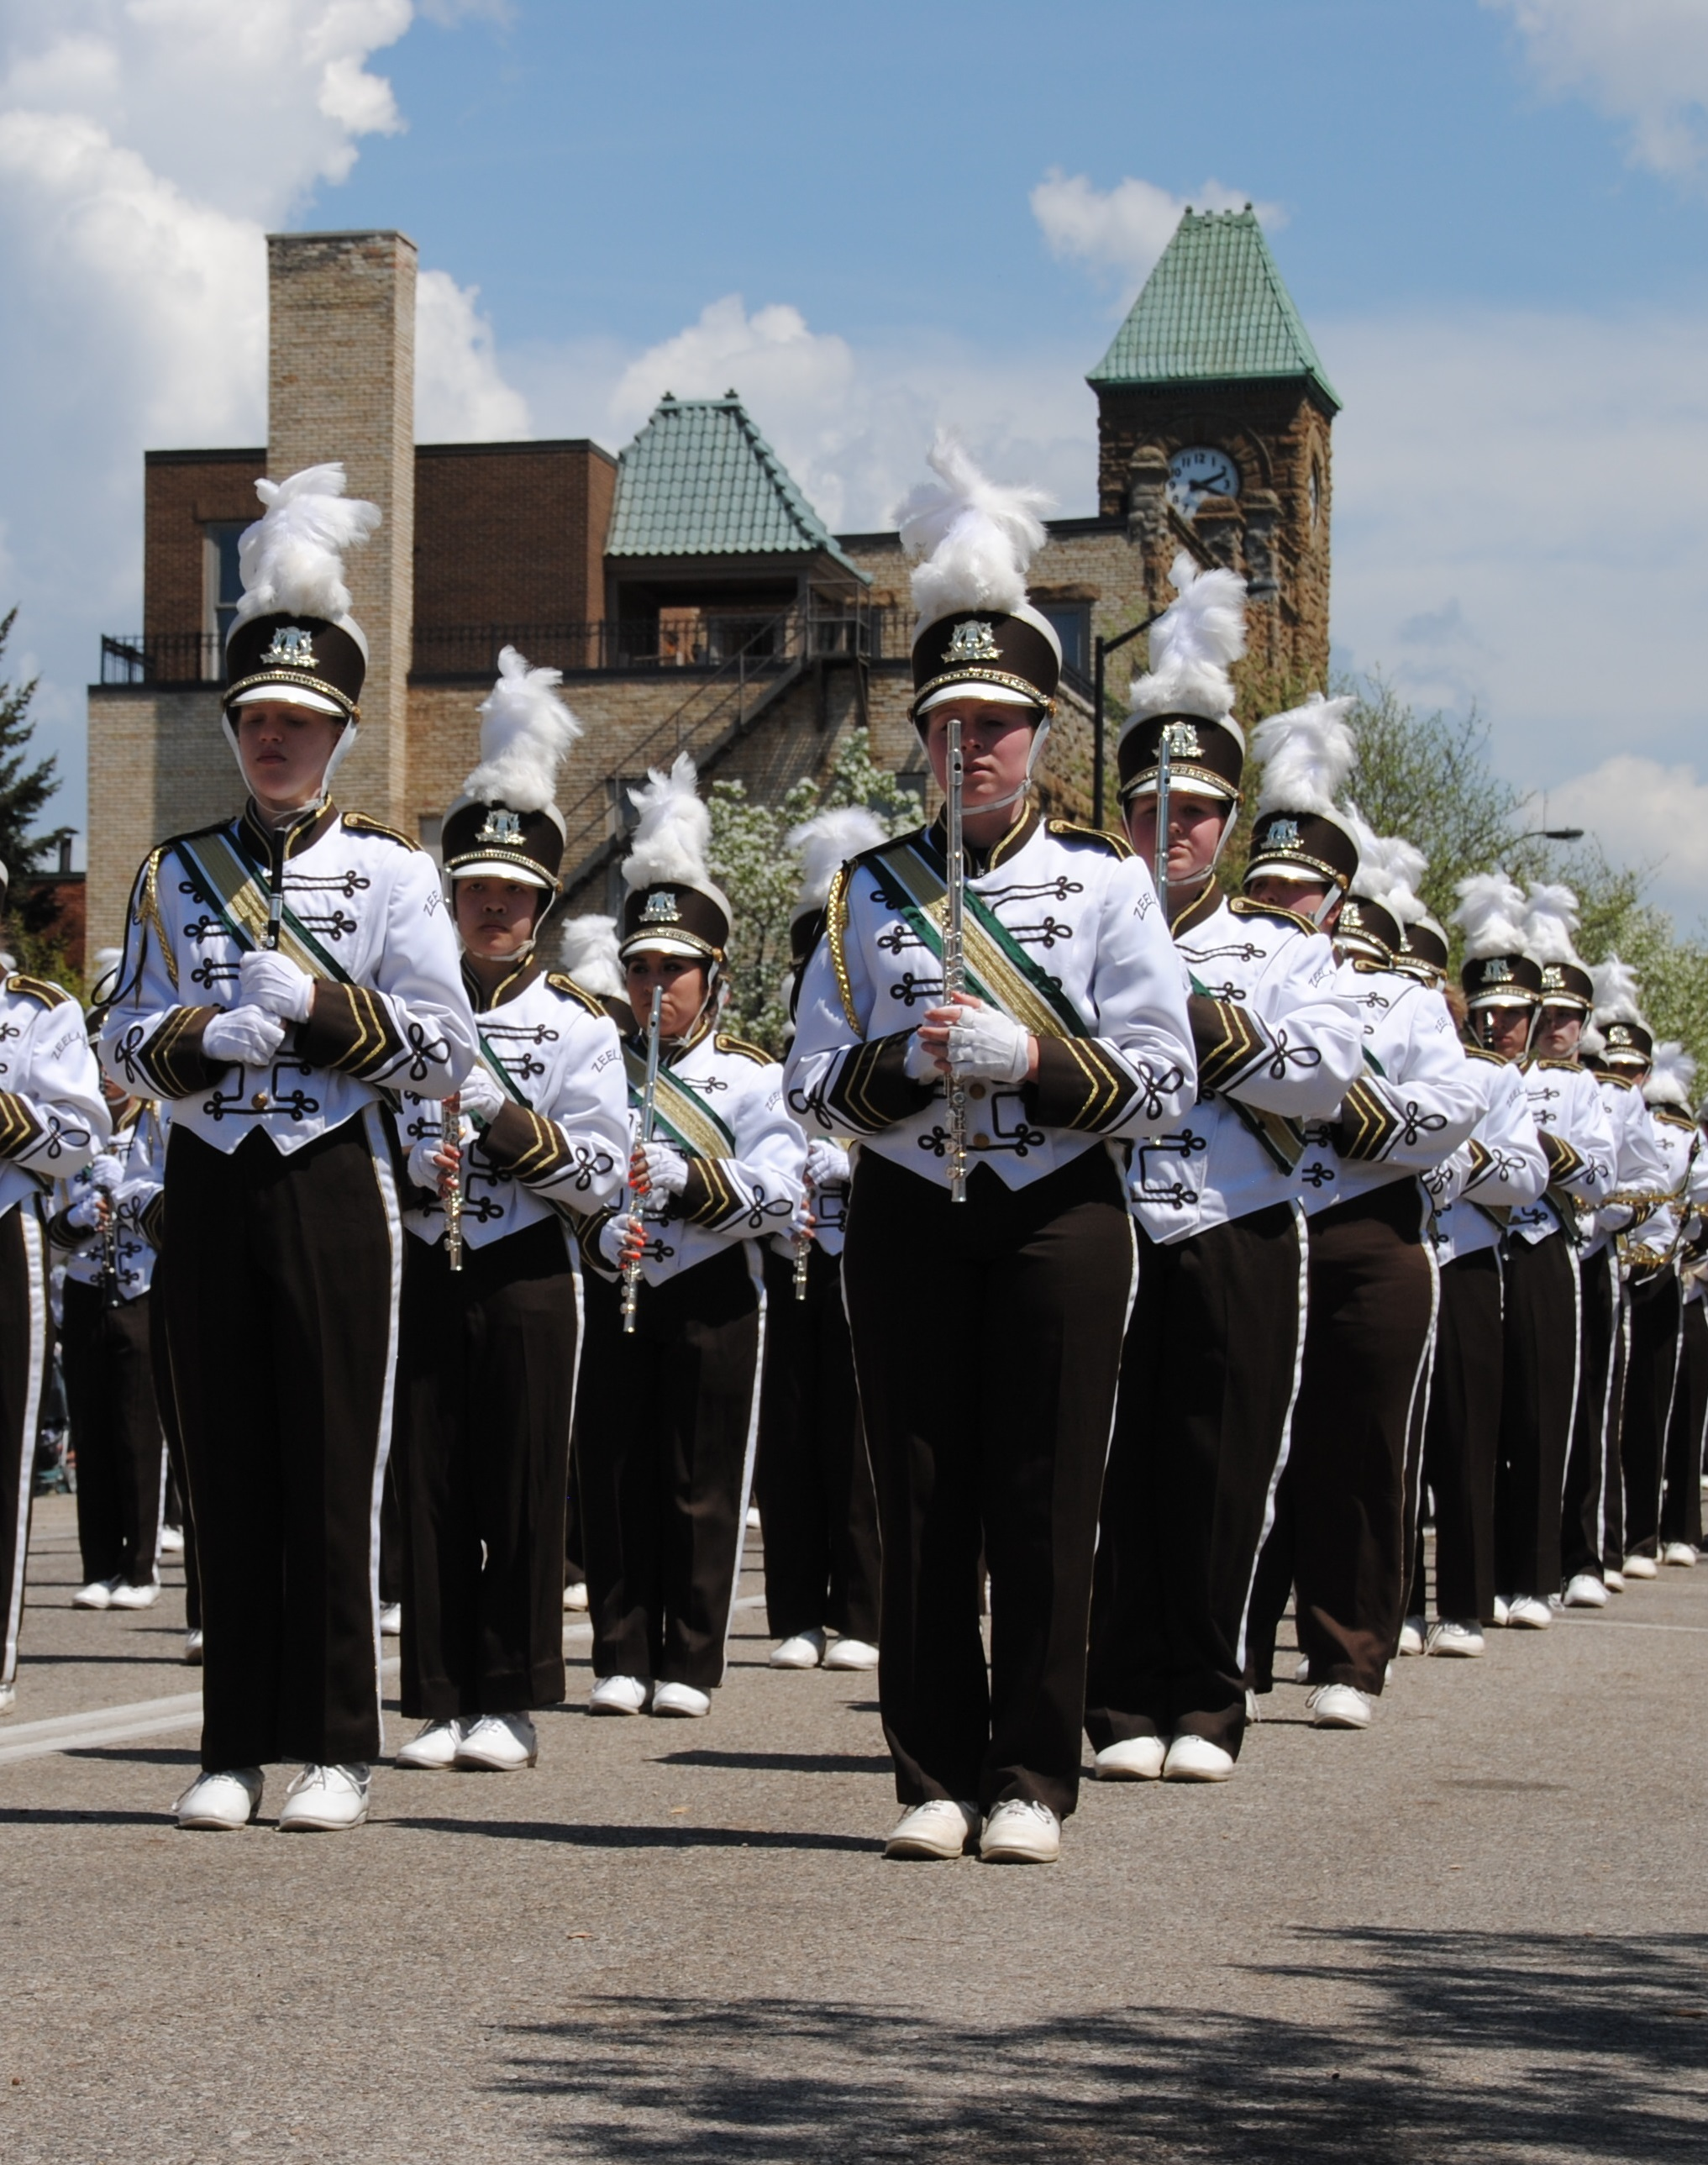 High schoool band members marching in a parade